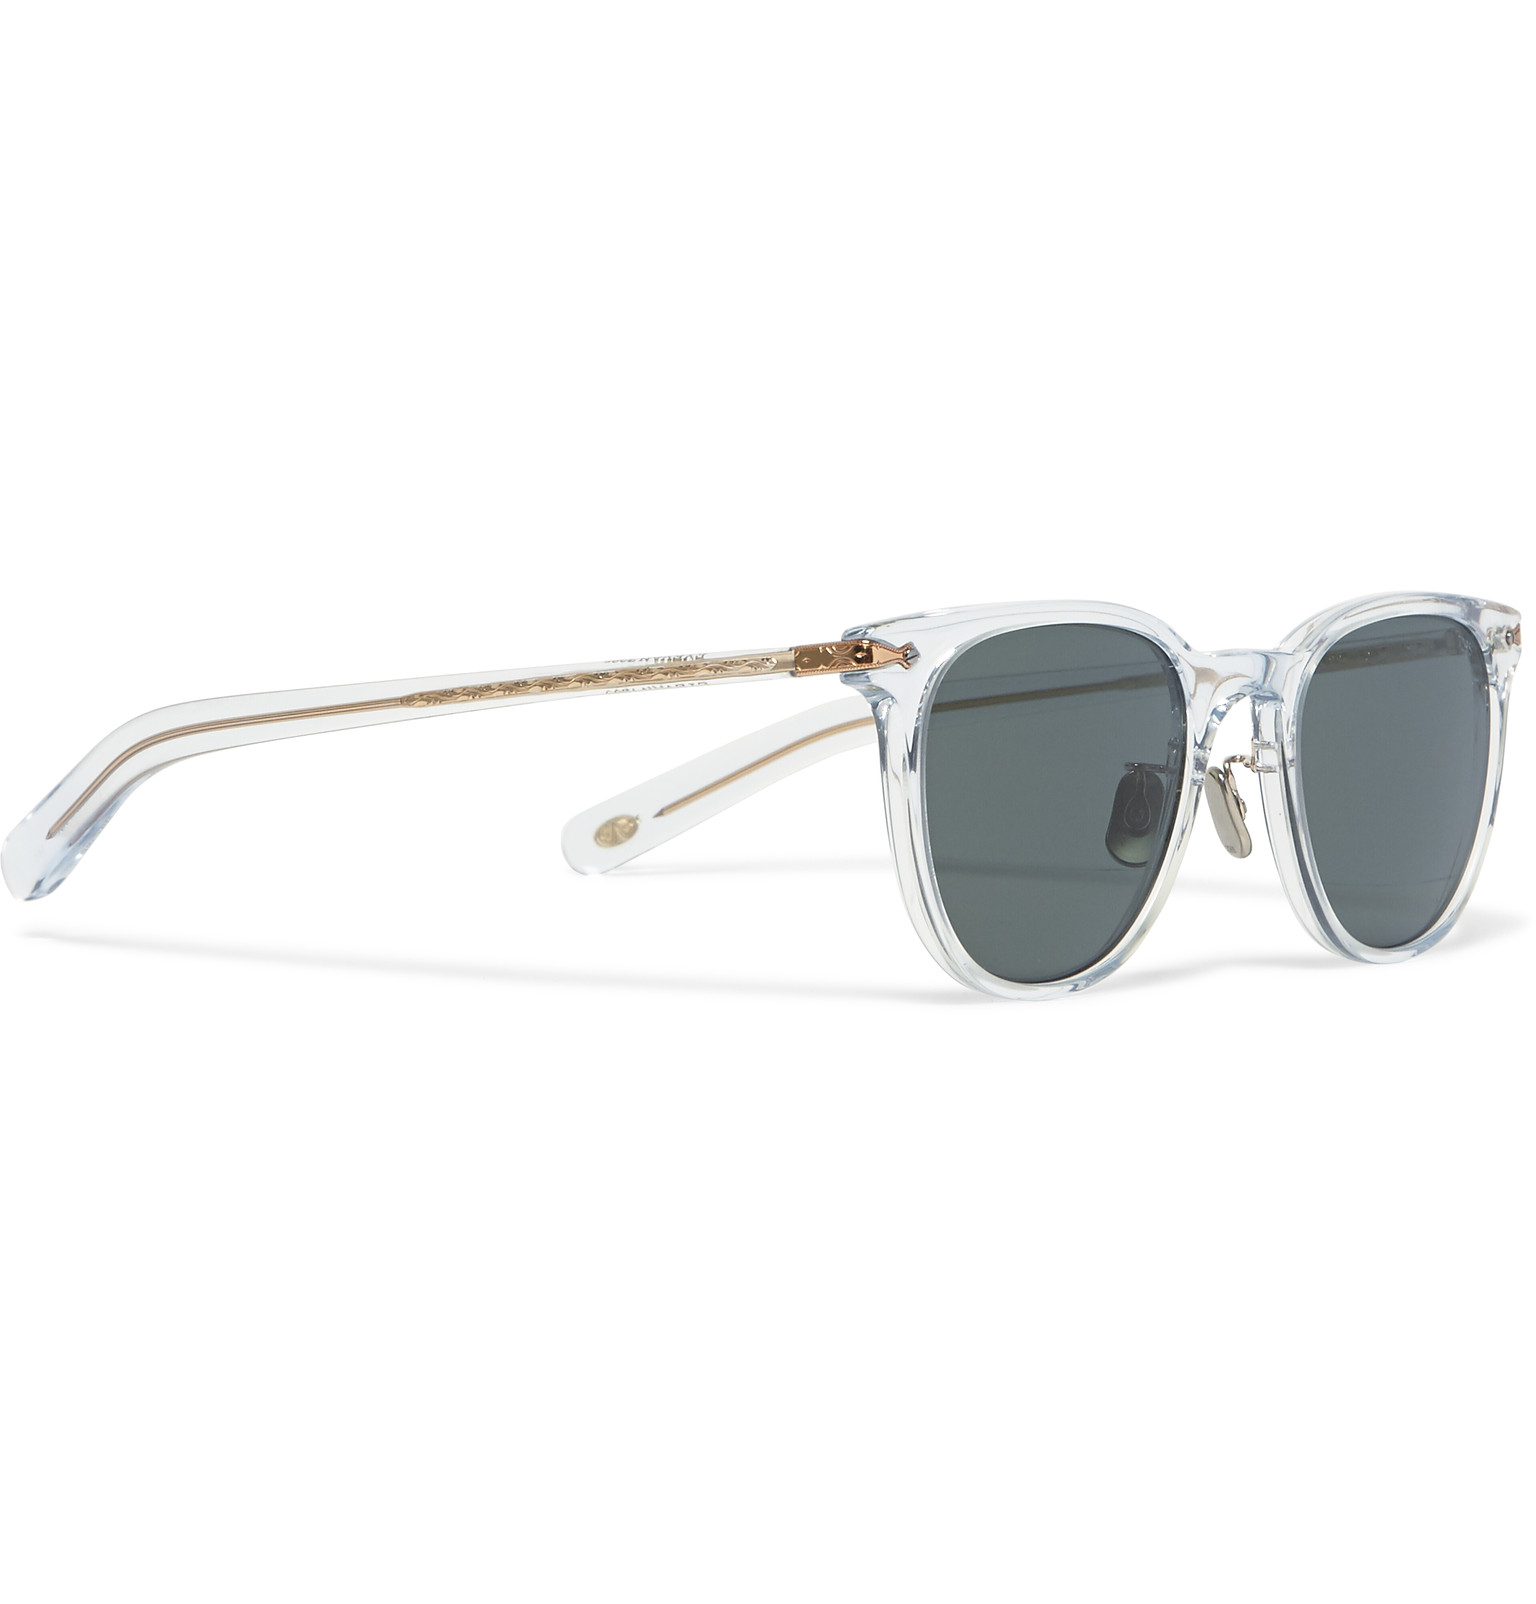 Eyevan 7285 Square-frame Acetate And Gold-tone Sunglasses in White ...